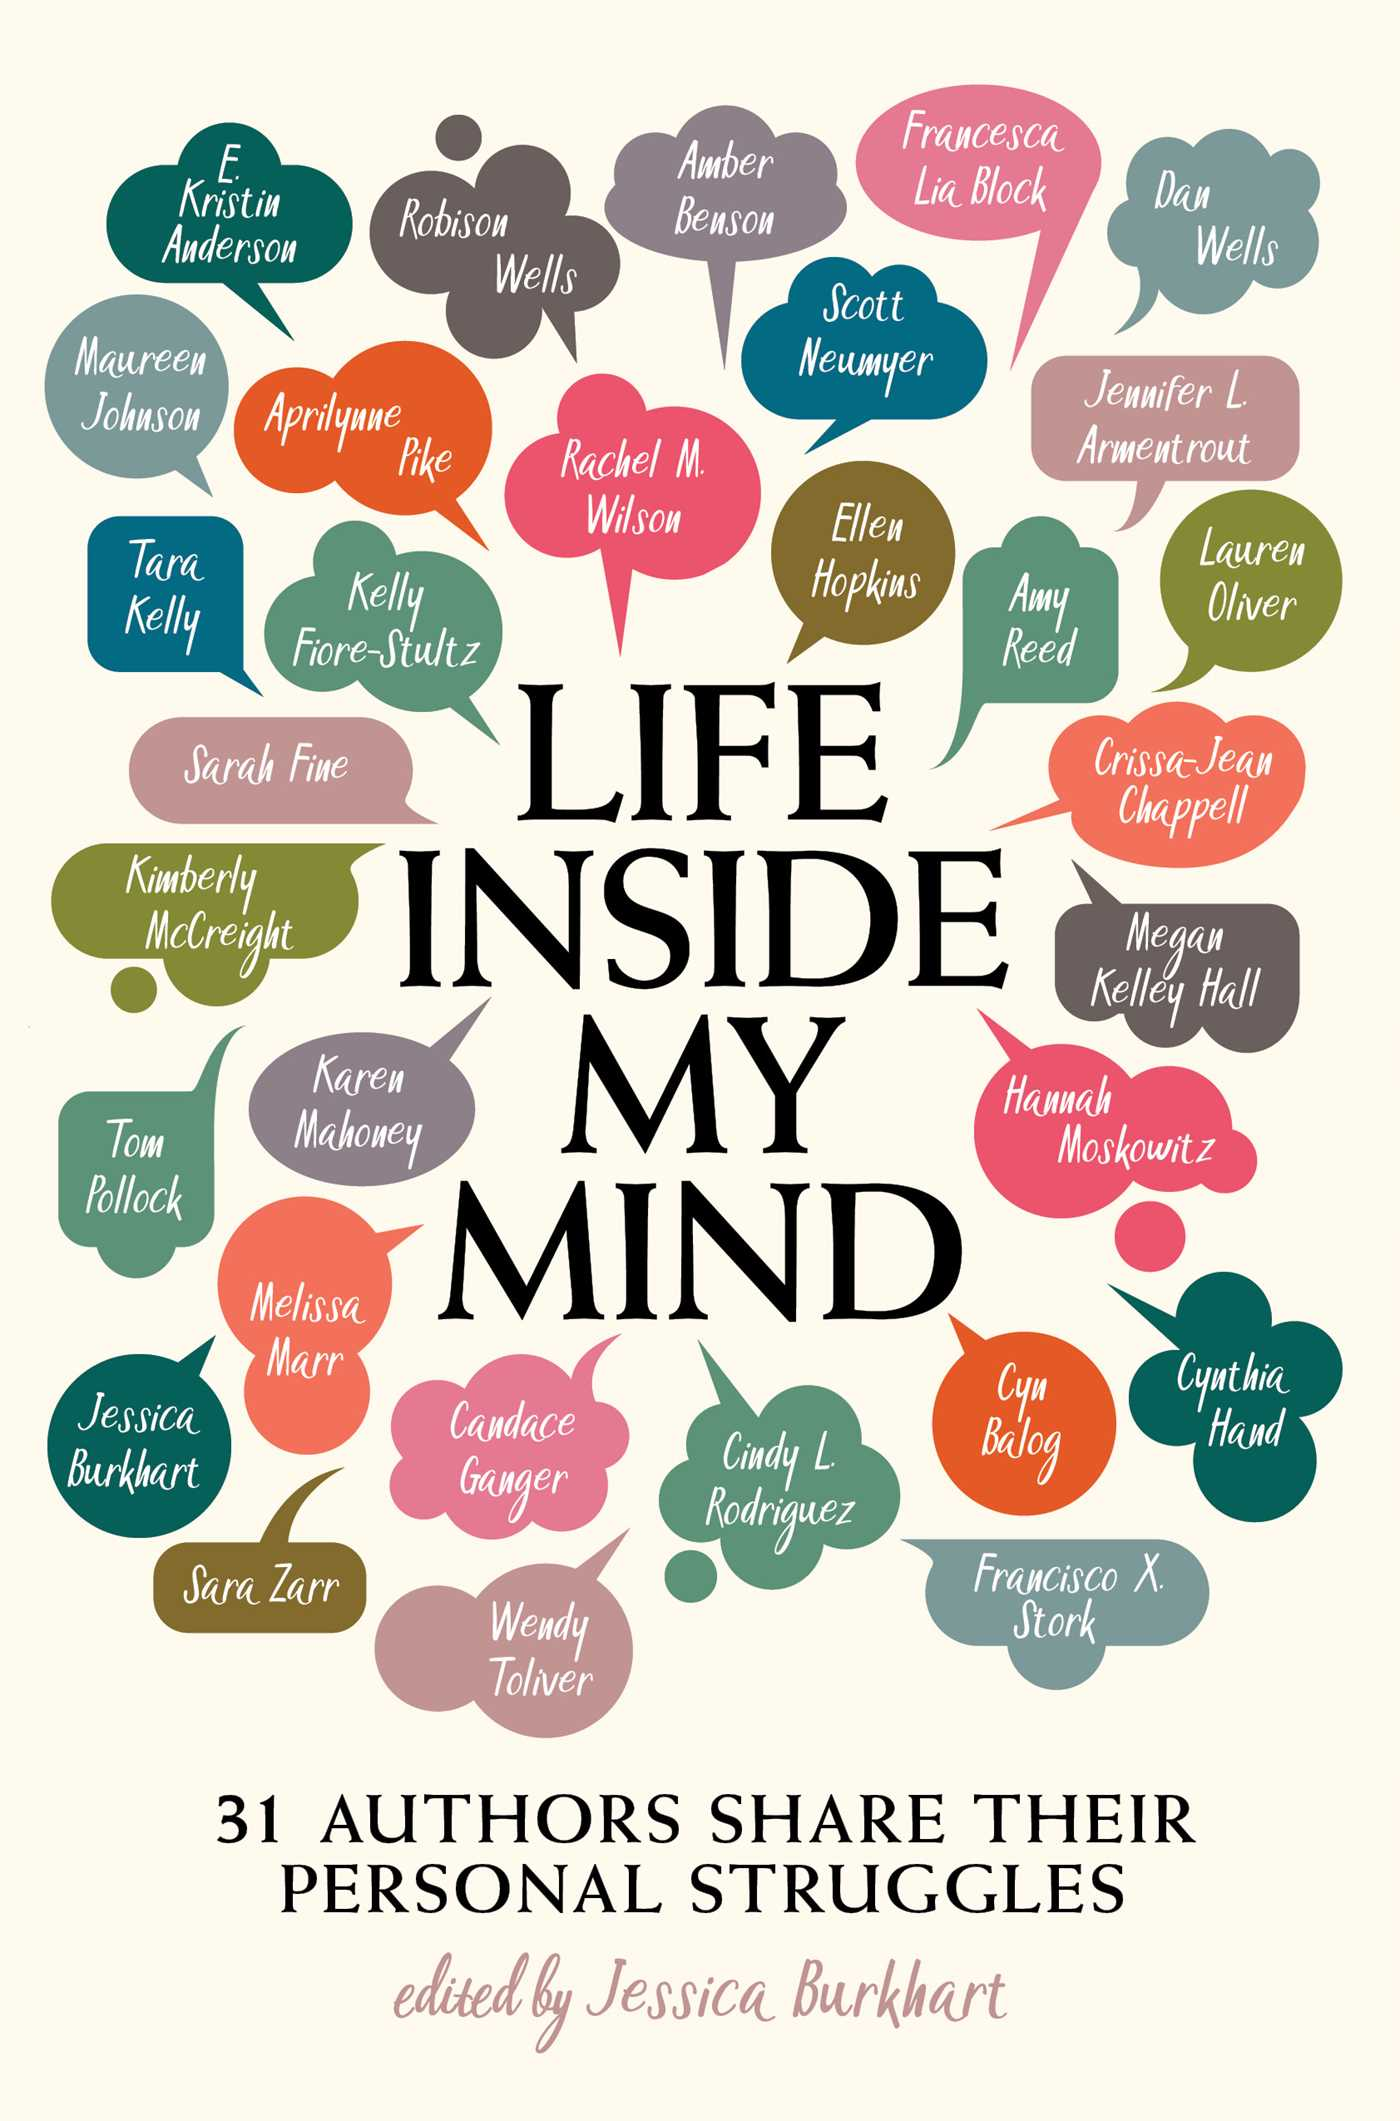 Life Inside My Mind 31 Authors Share Their Personal Struggles